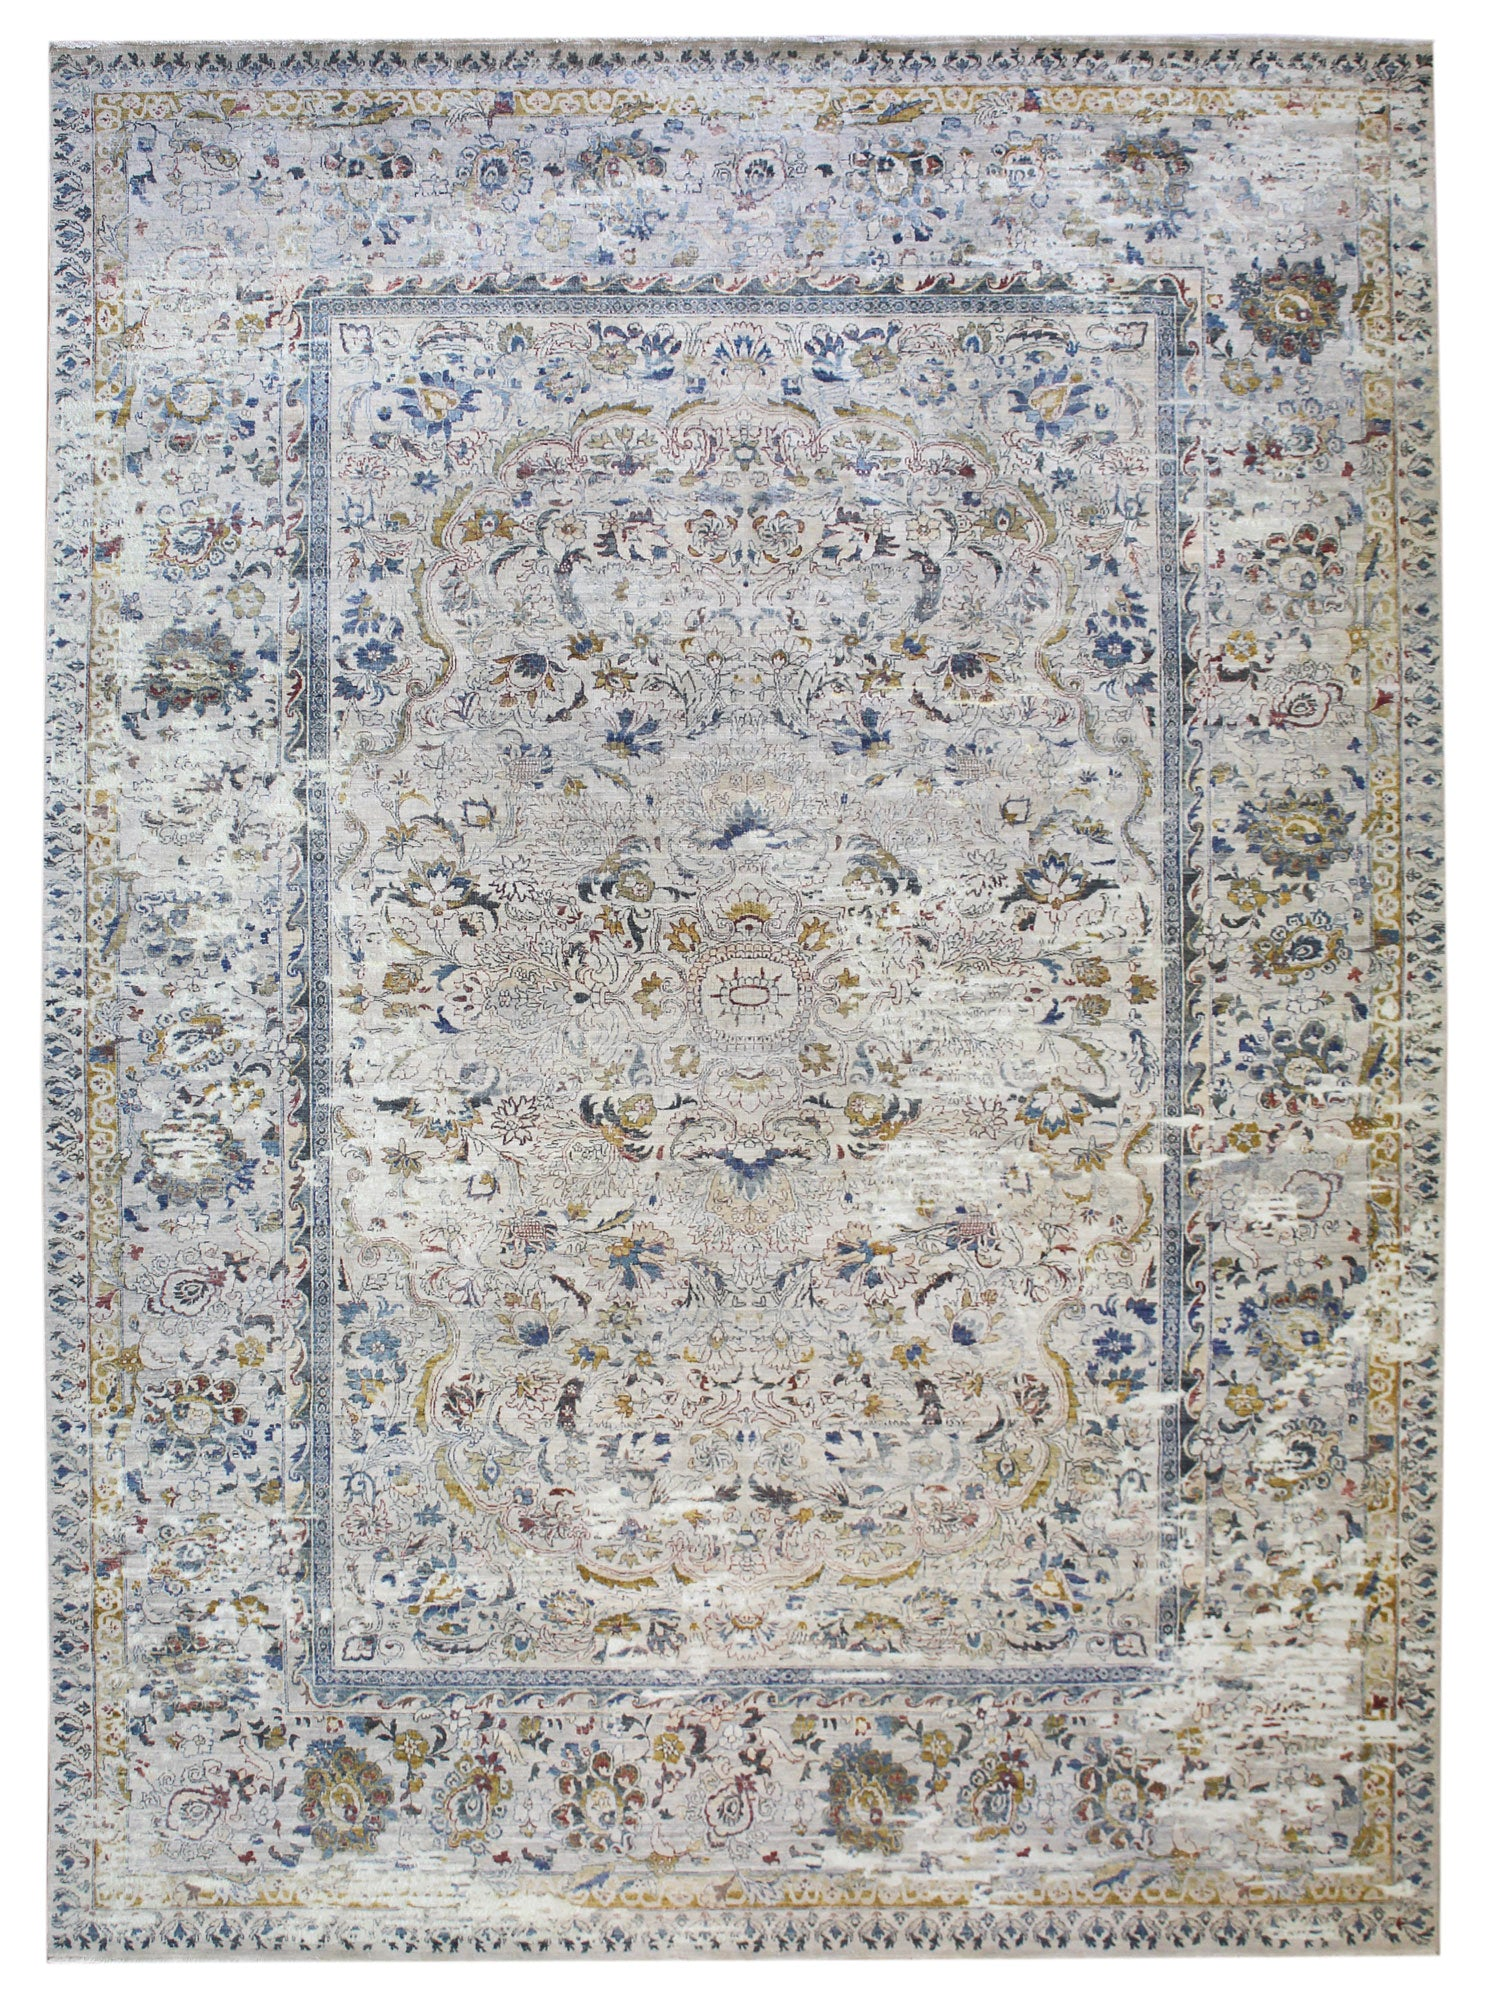 Amritsar Handwoven Transitional Rug